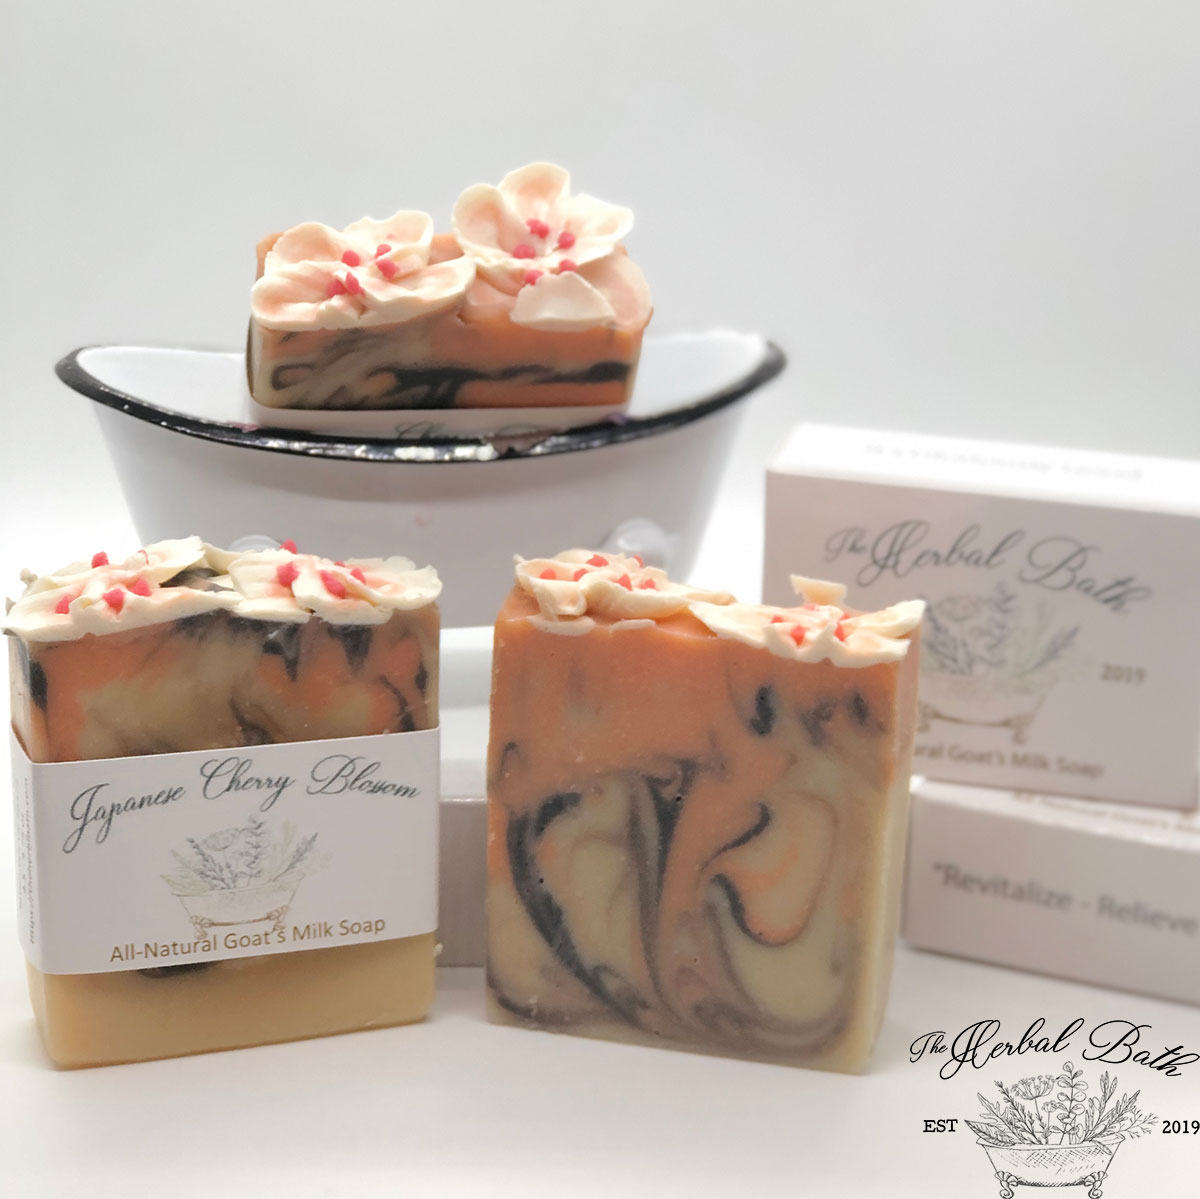 Japanese Cherry Blossom Soap